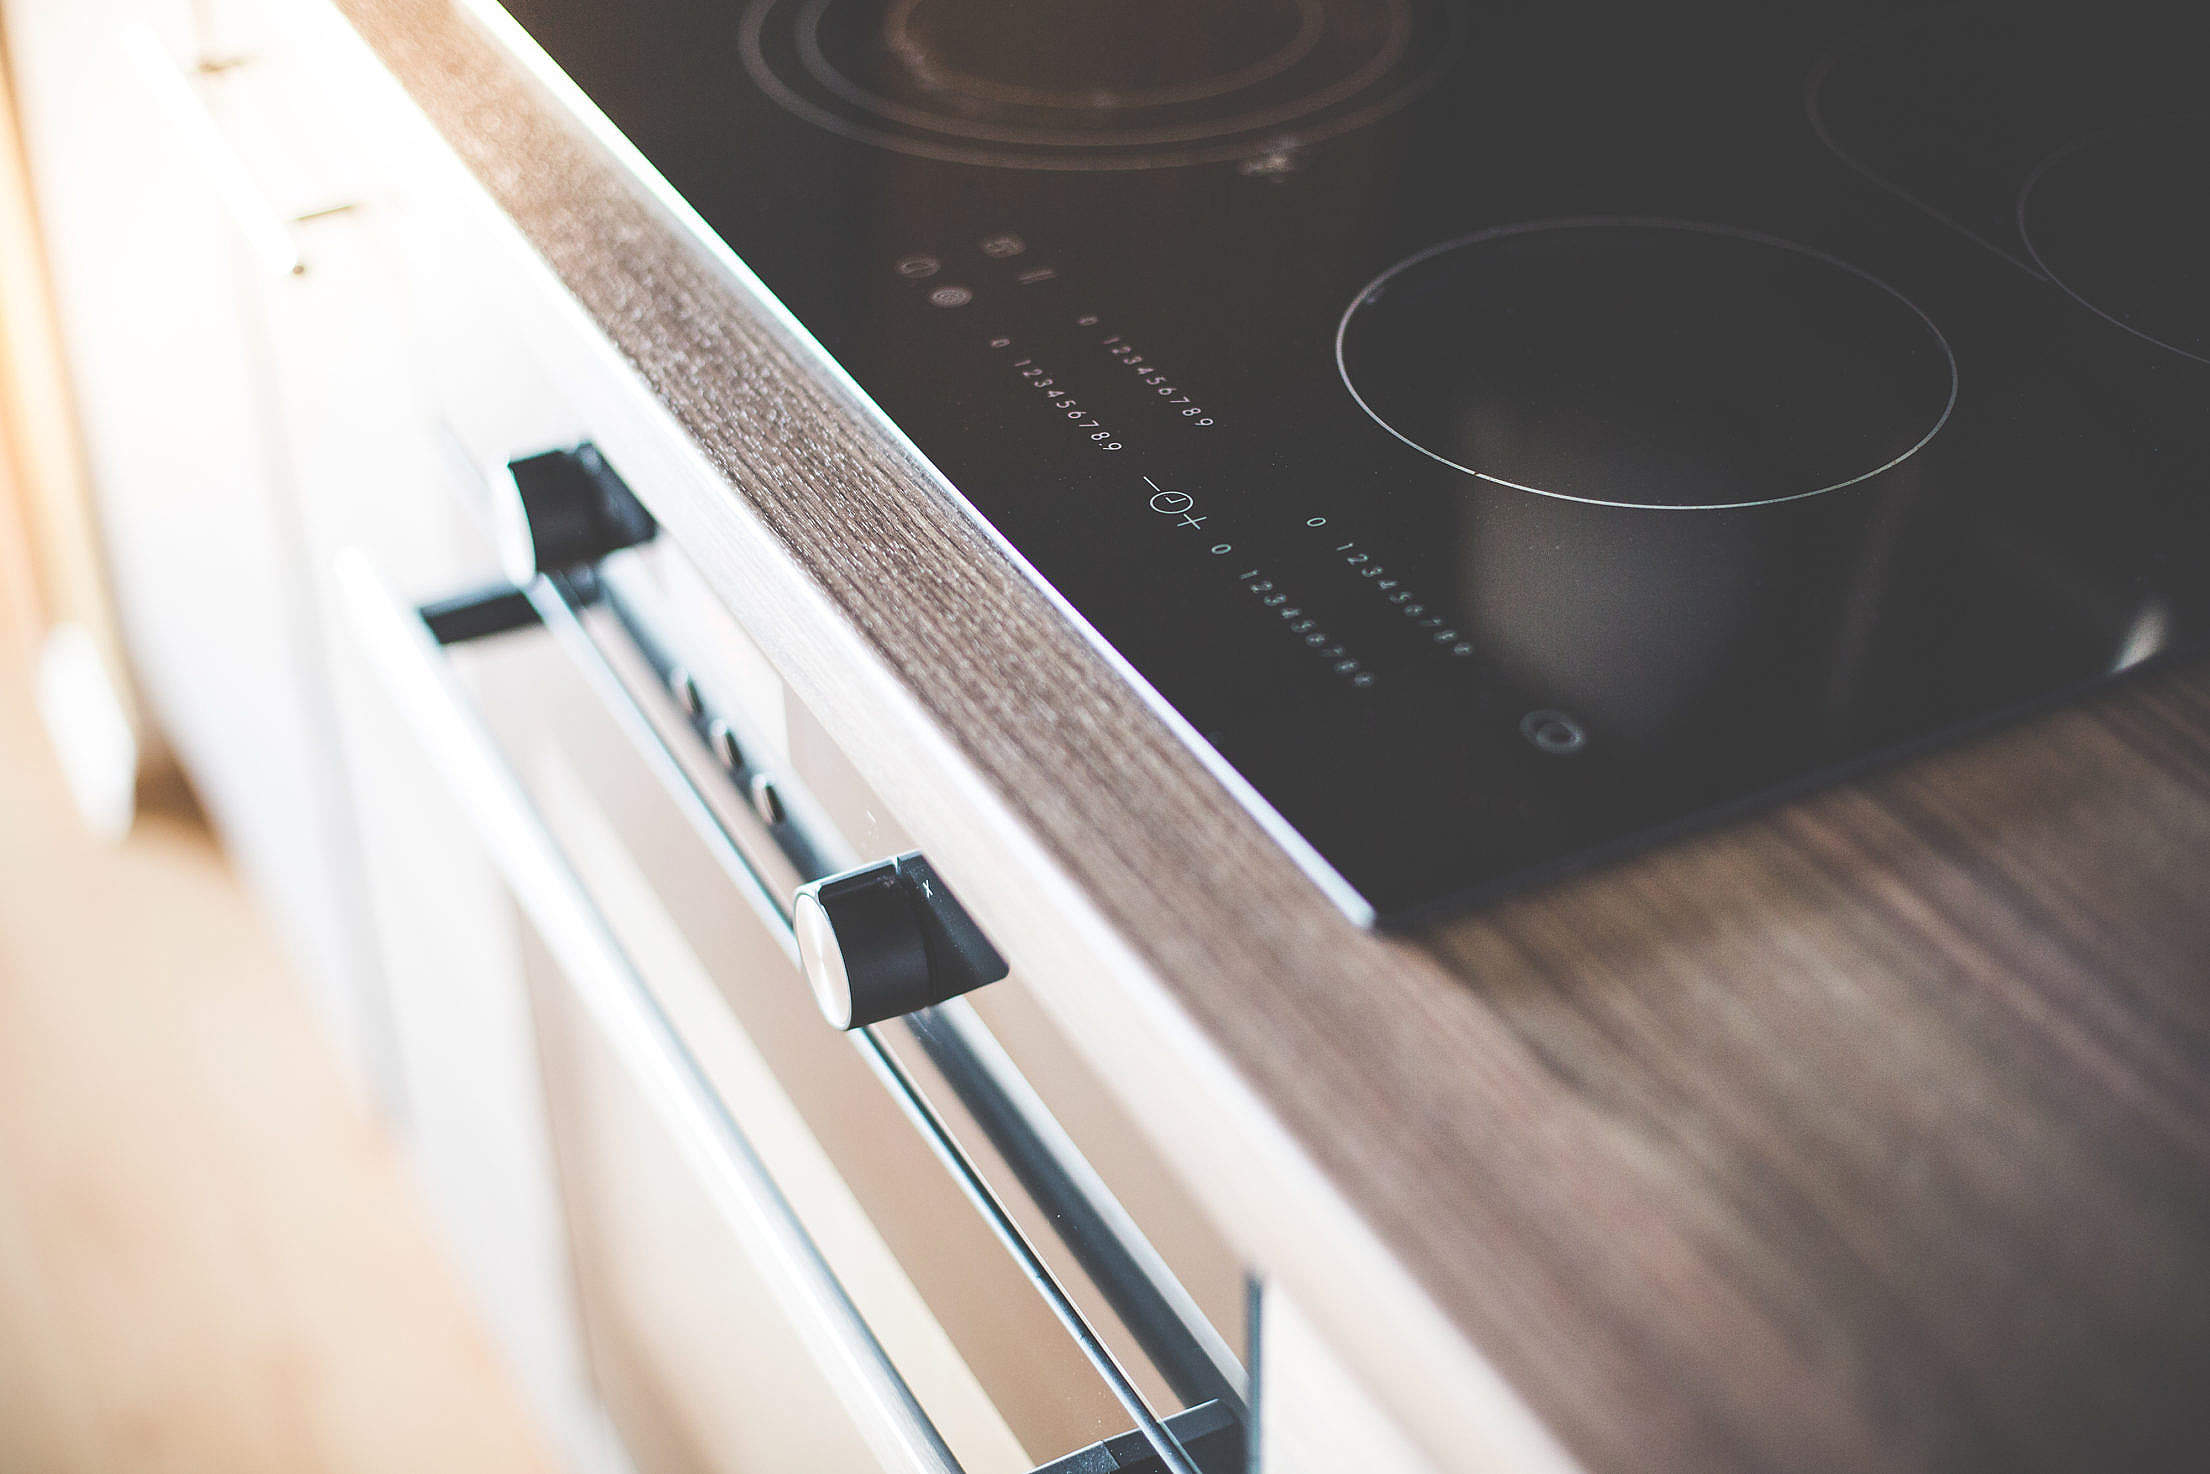 Modern Home Kitchen Glass Ceramic Cooker Close Up Free Stock Photo